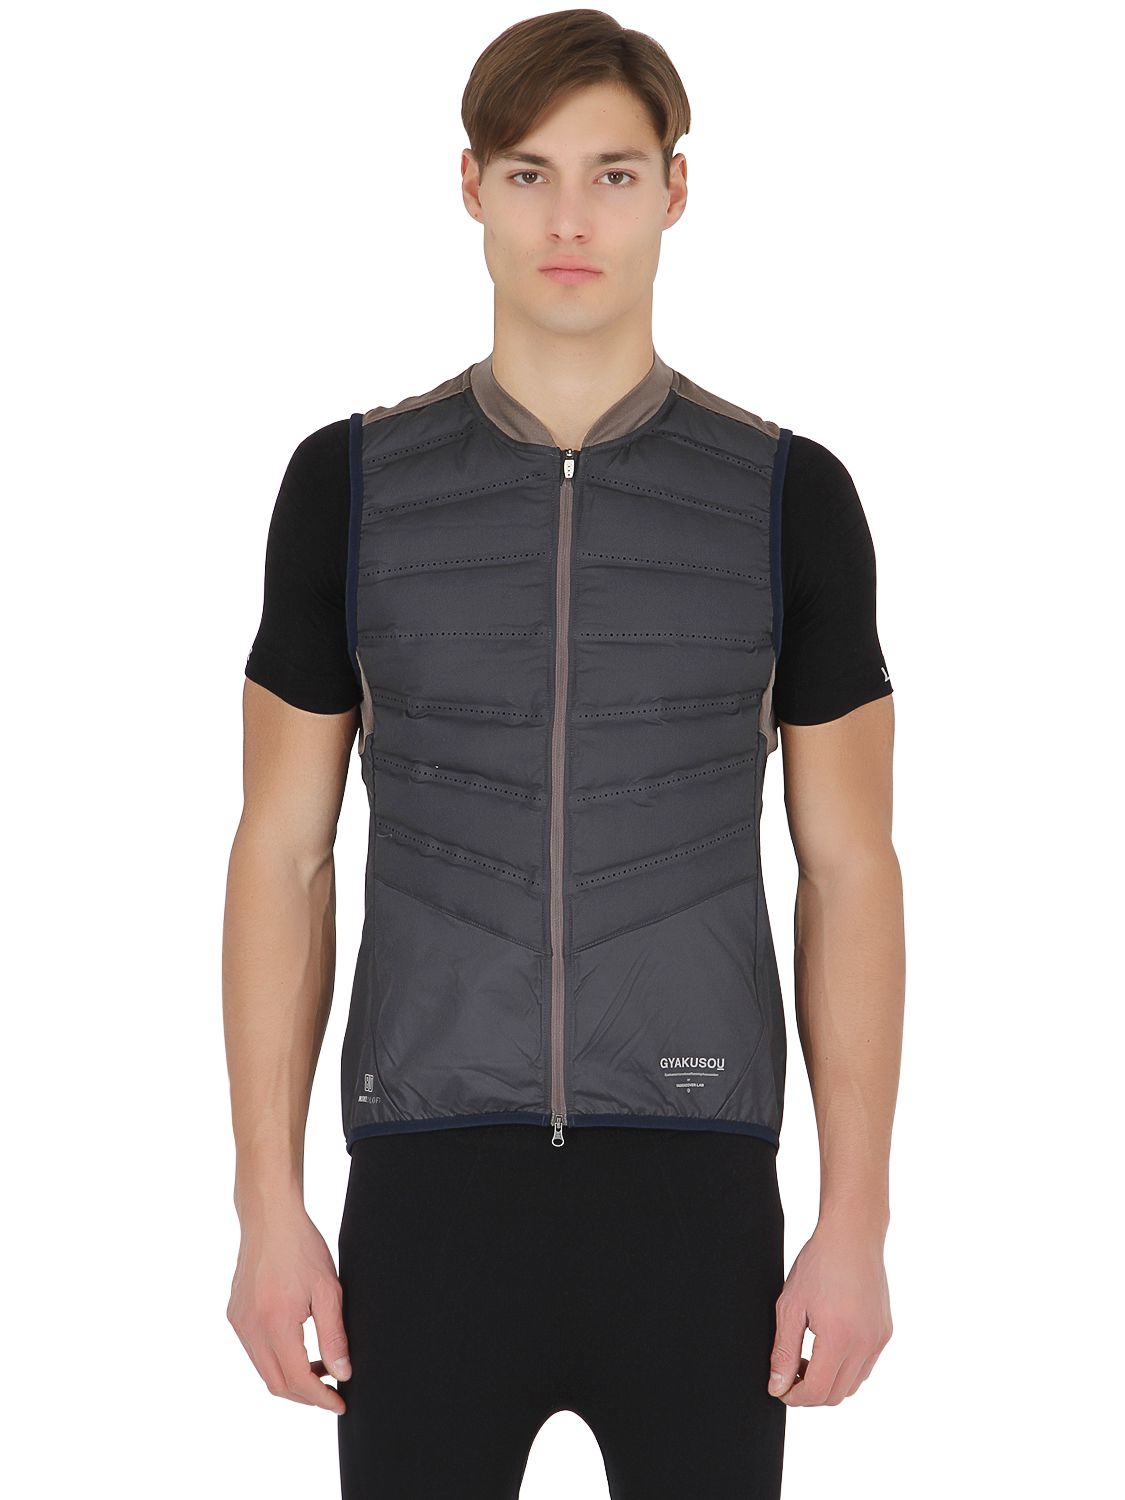 0bc2816562fb8 ... nike air max taille 40 - Nike Aeroloft Running Vest Jacket in Gray |  Lyst ...